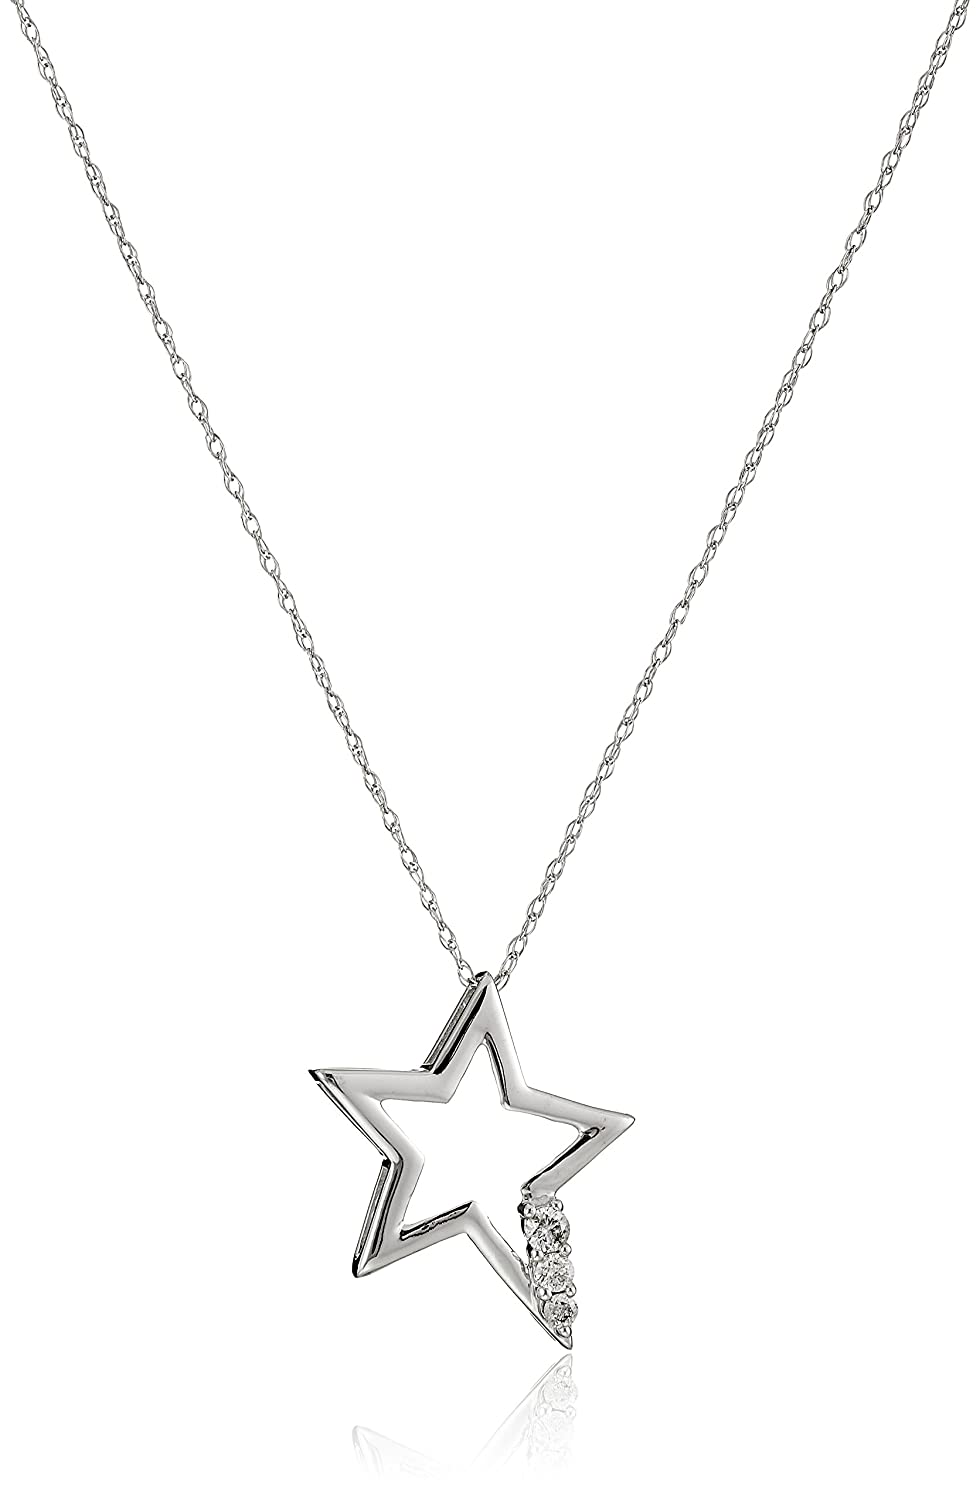 faac78a12 10k White Gold and Diamond Star Pendant Necklace (1/10 cttw, I-J Color,  I2-I3 Clarity